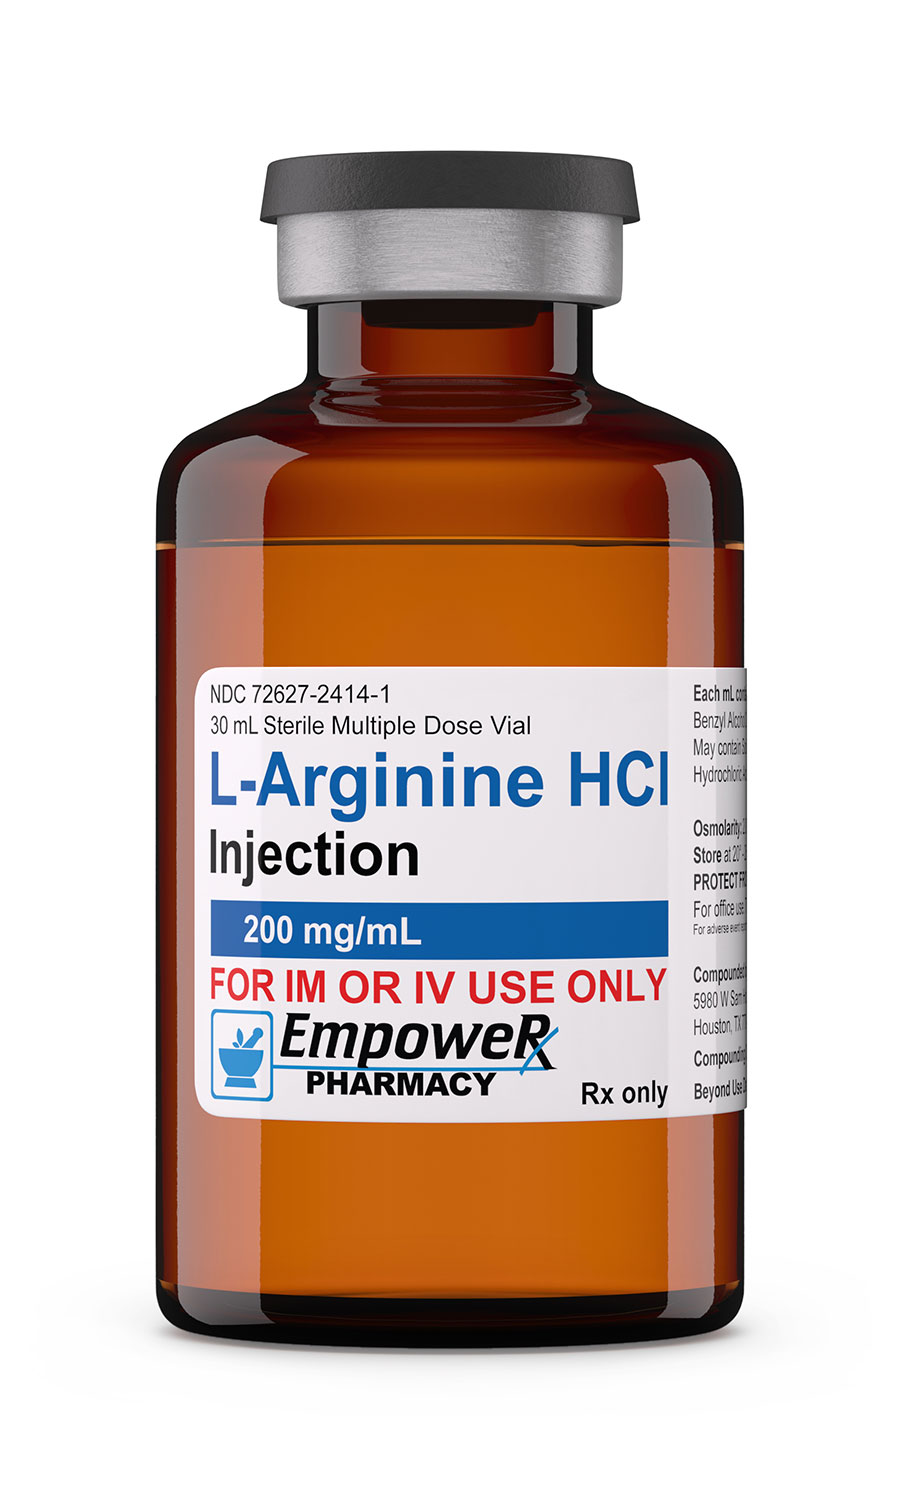 L-Arginine-HCl-Injection